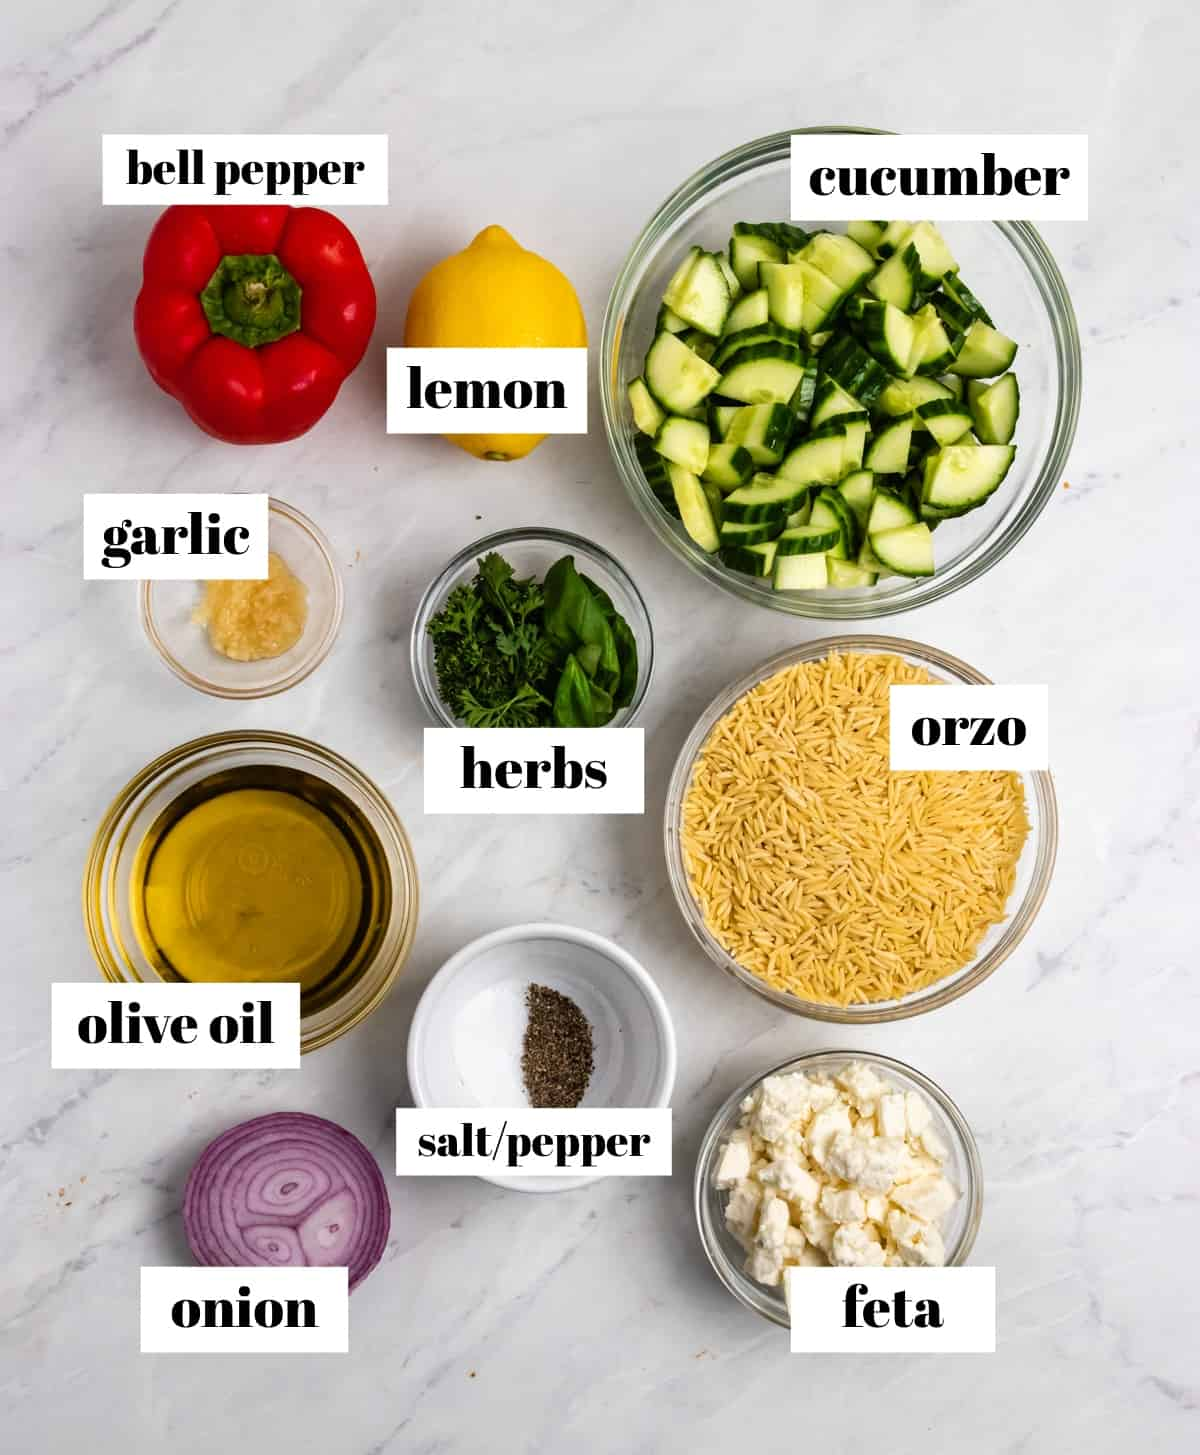 Cucumber, pepper, orzo, lemon, onion and other ingredients labeled on counter.